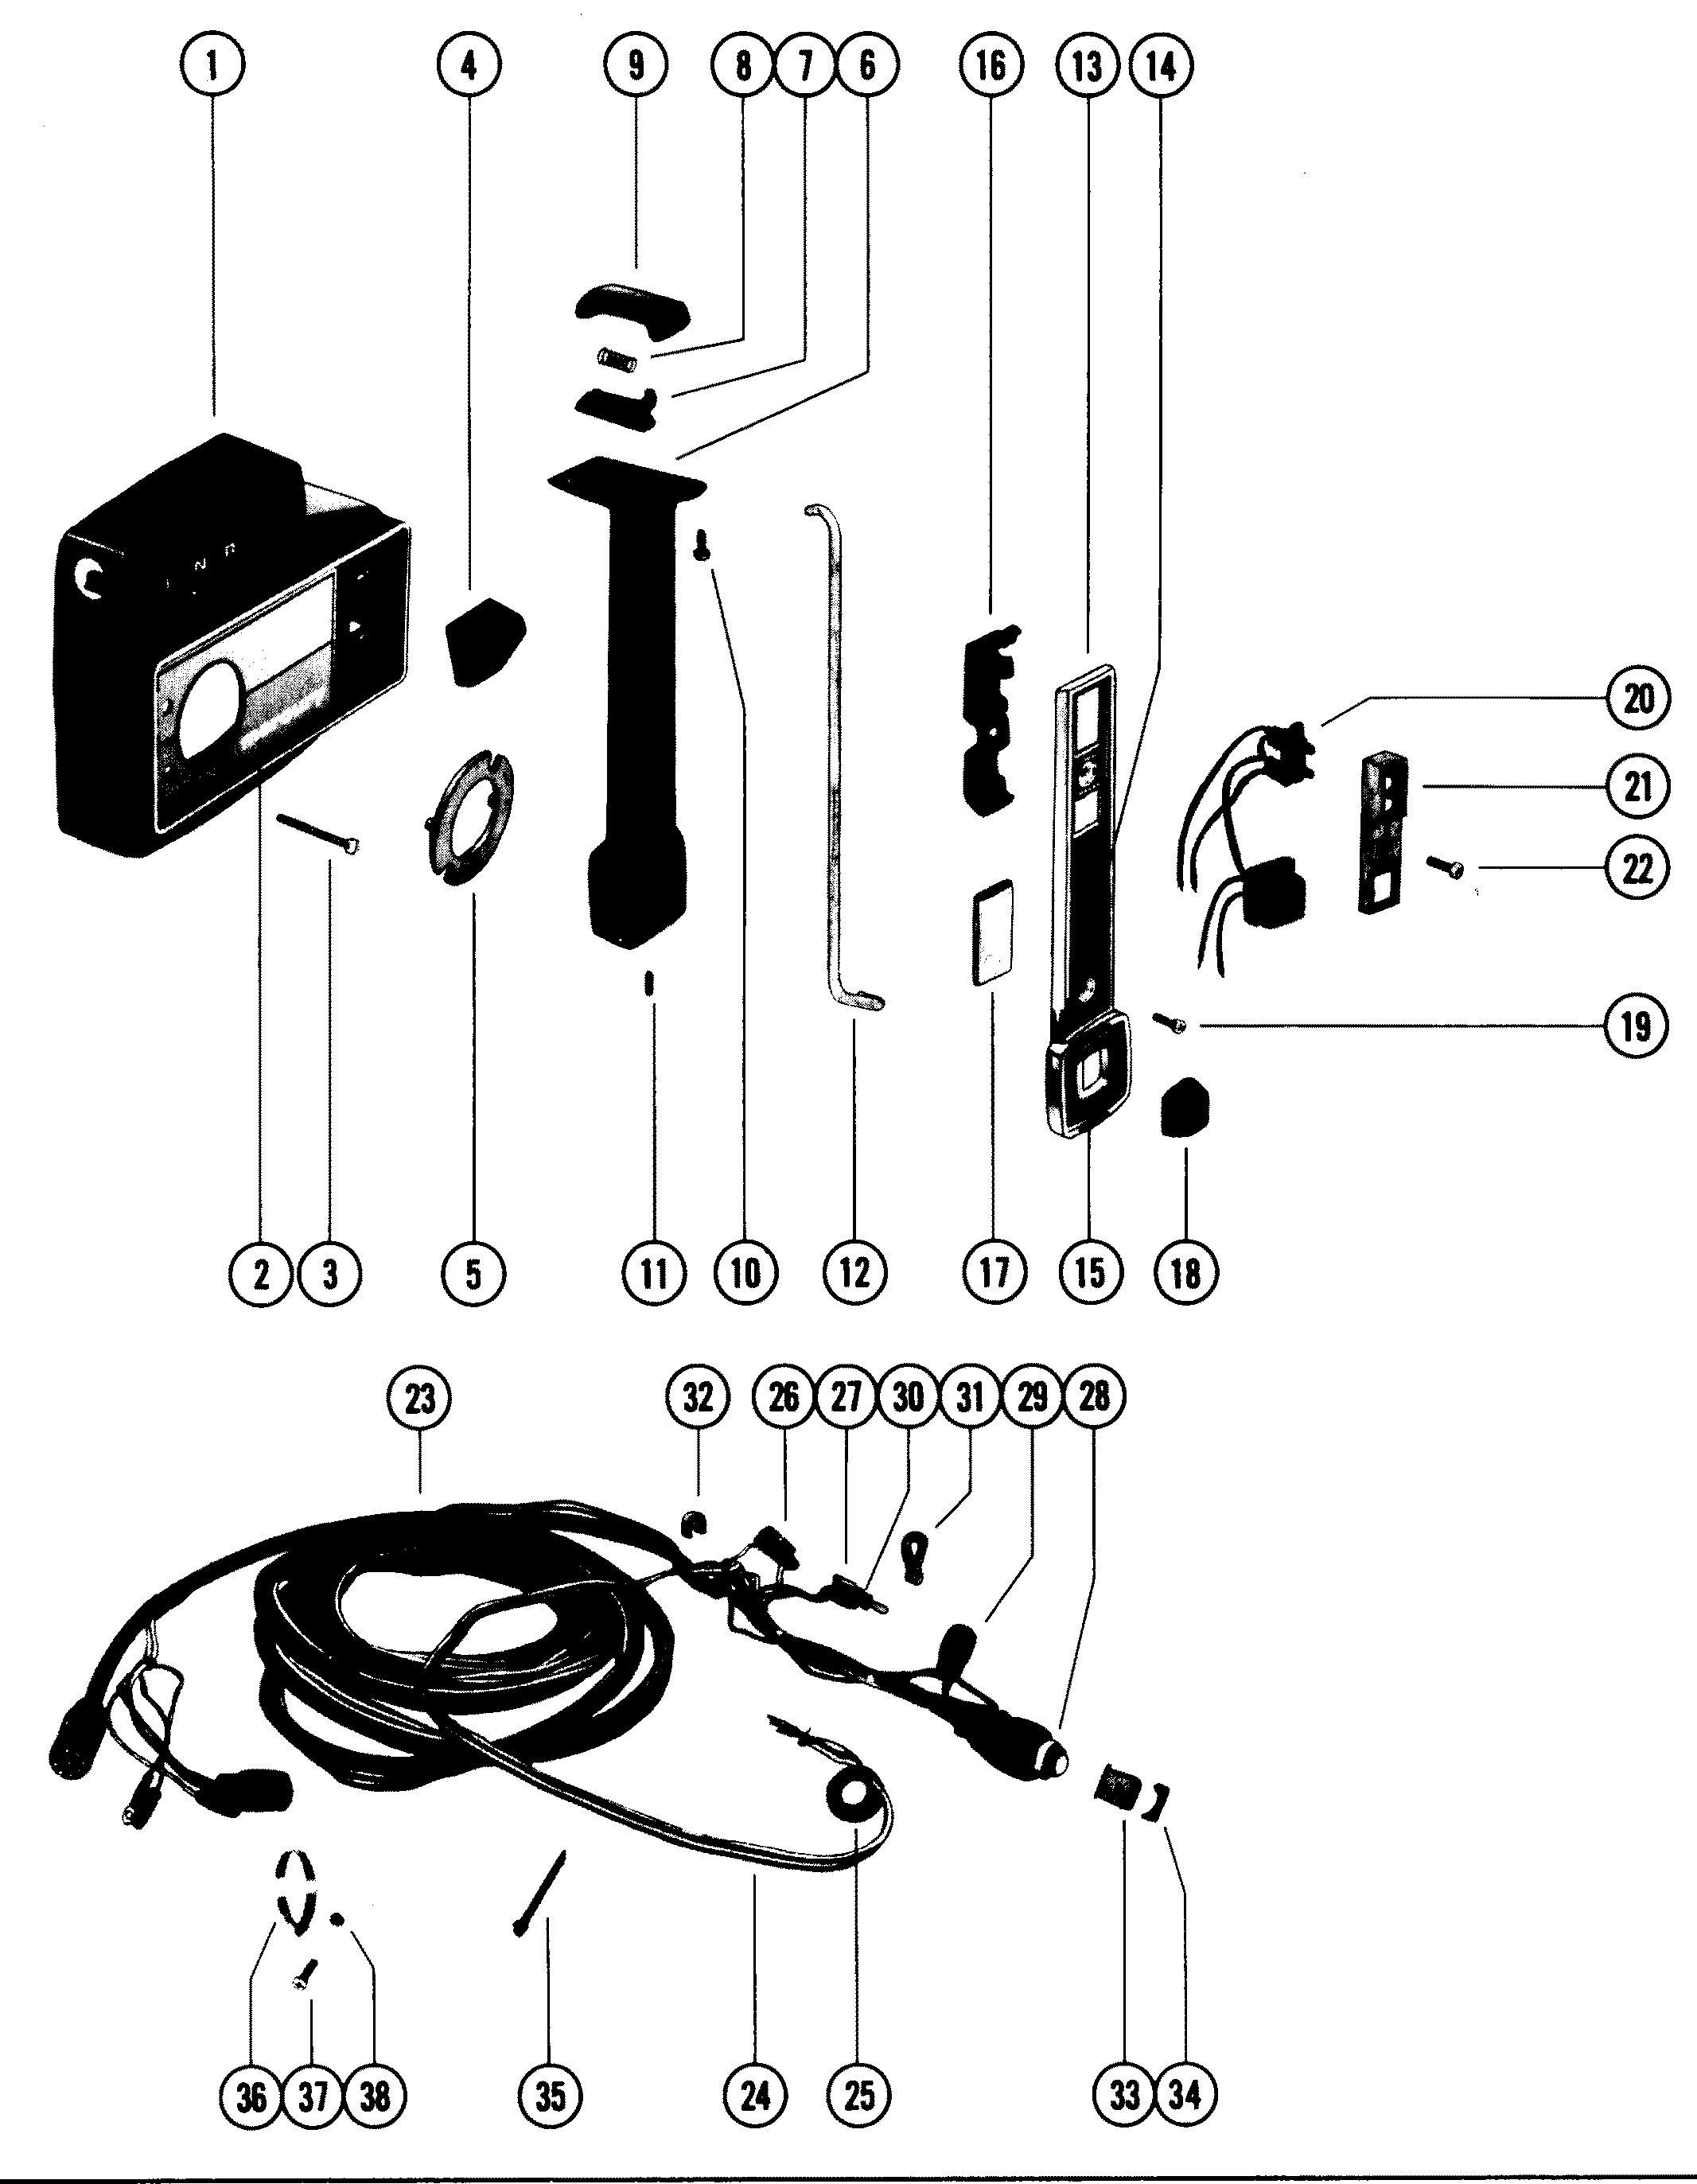 Quicksilver Throttle Control Diagram Choice Image - Diagram And ...